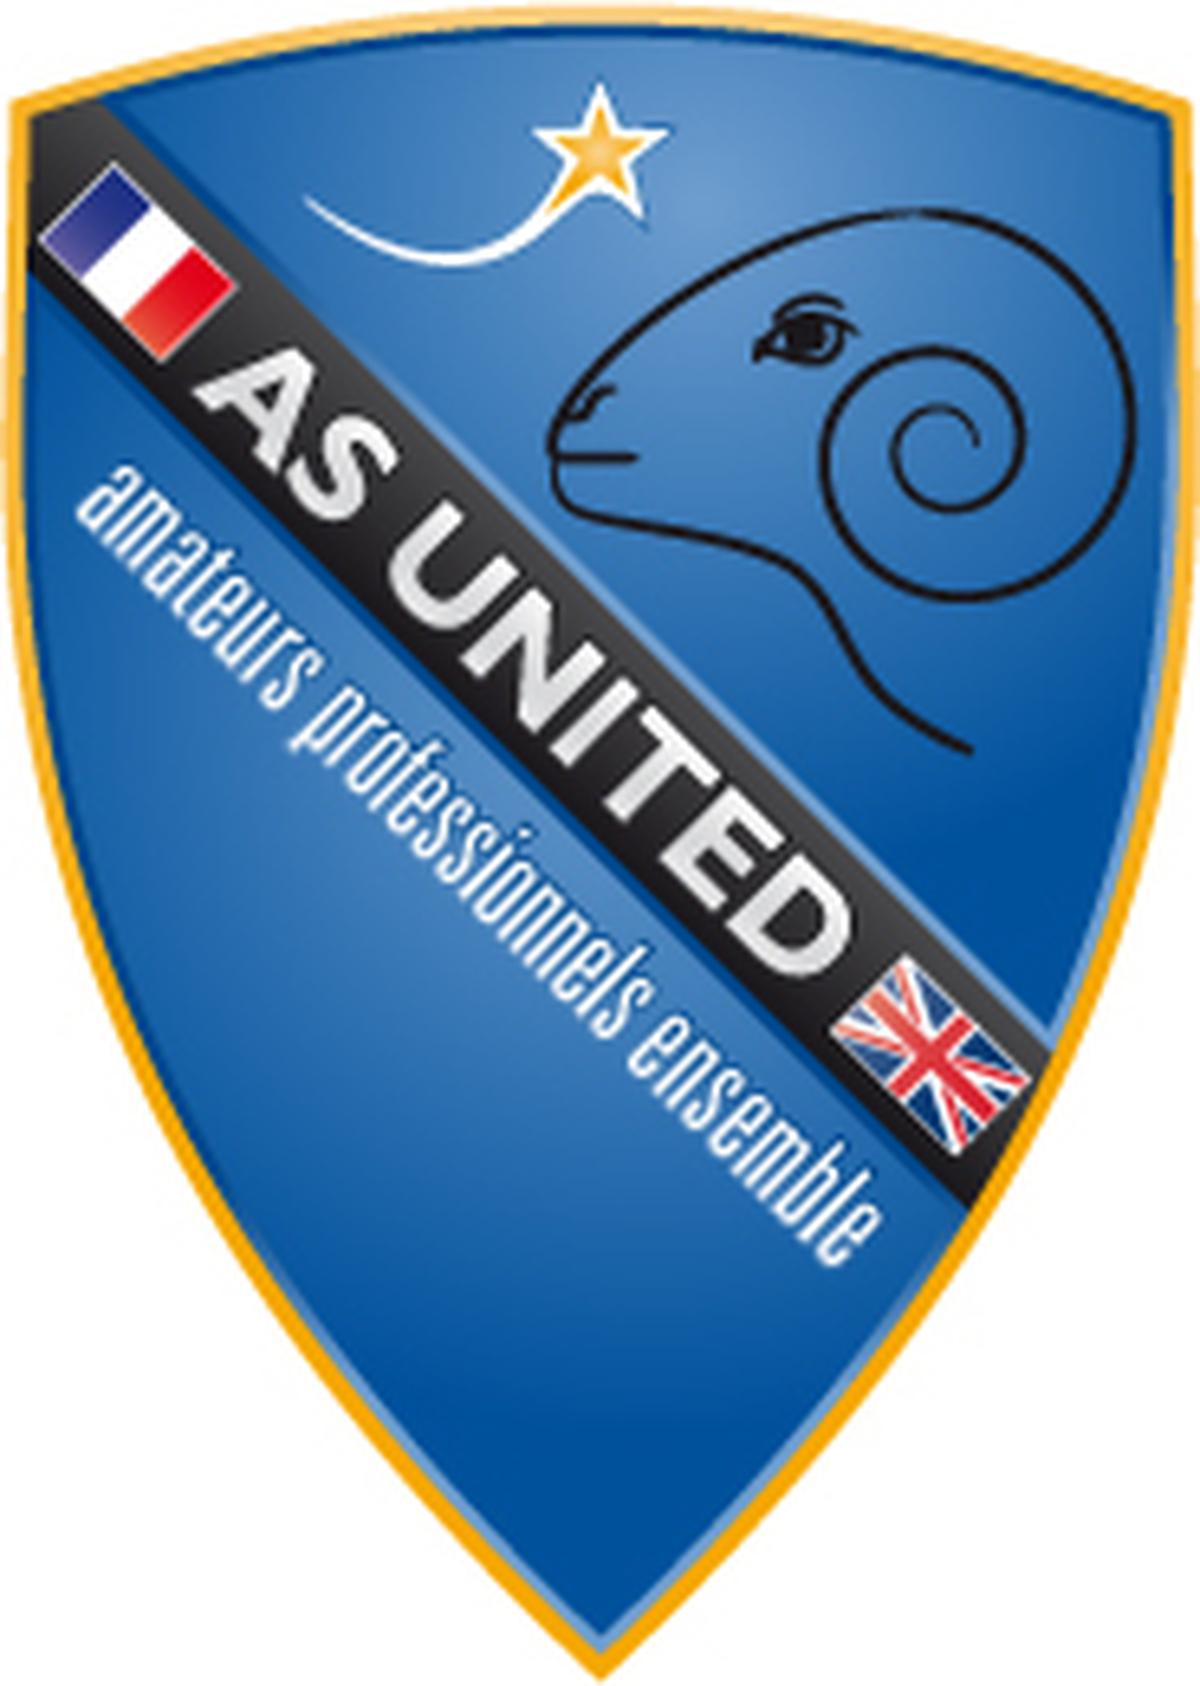 AS UNITED